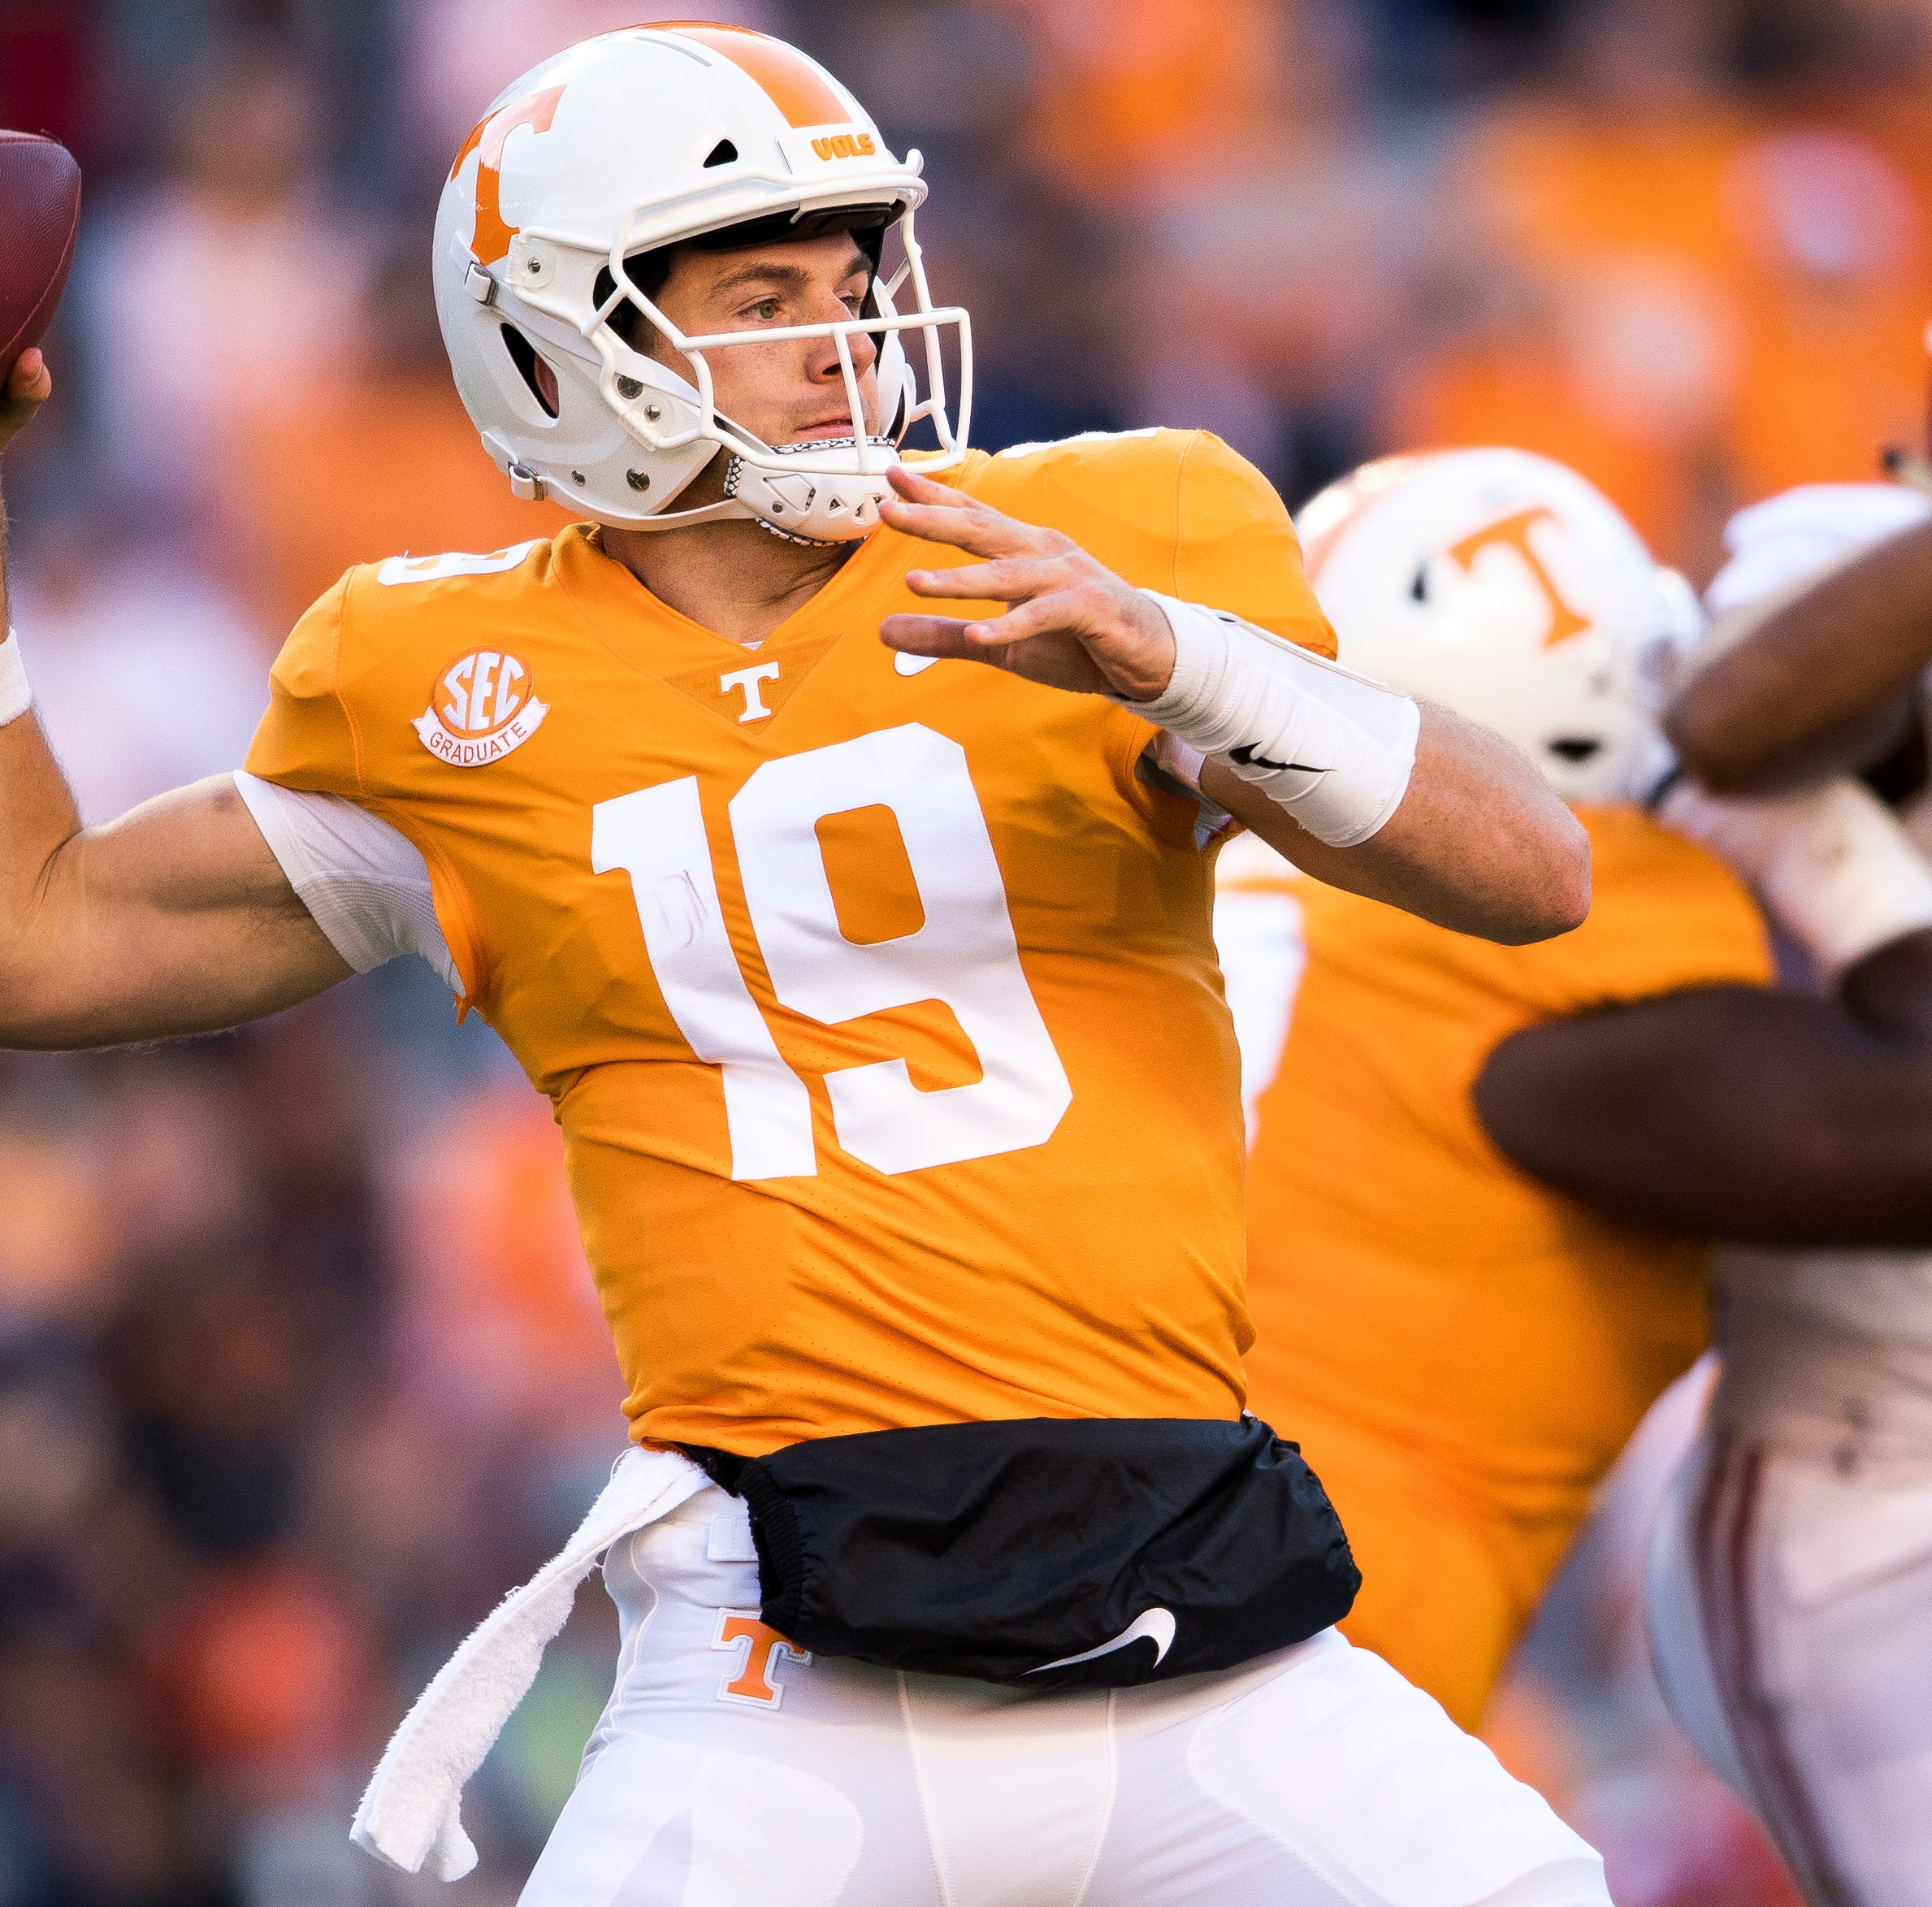 Jarrett Guarantano out with injury, Keller Chryst enters for UT Vols vs. Missouri